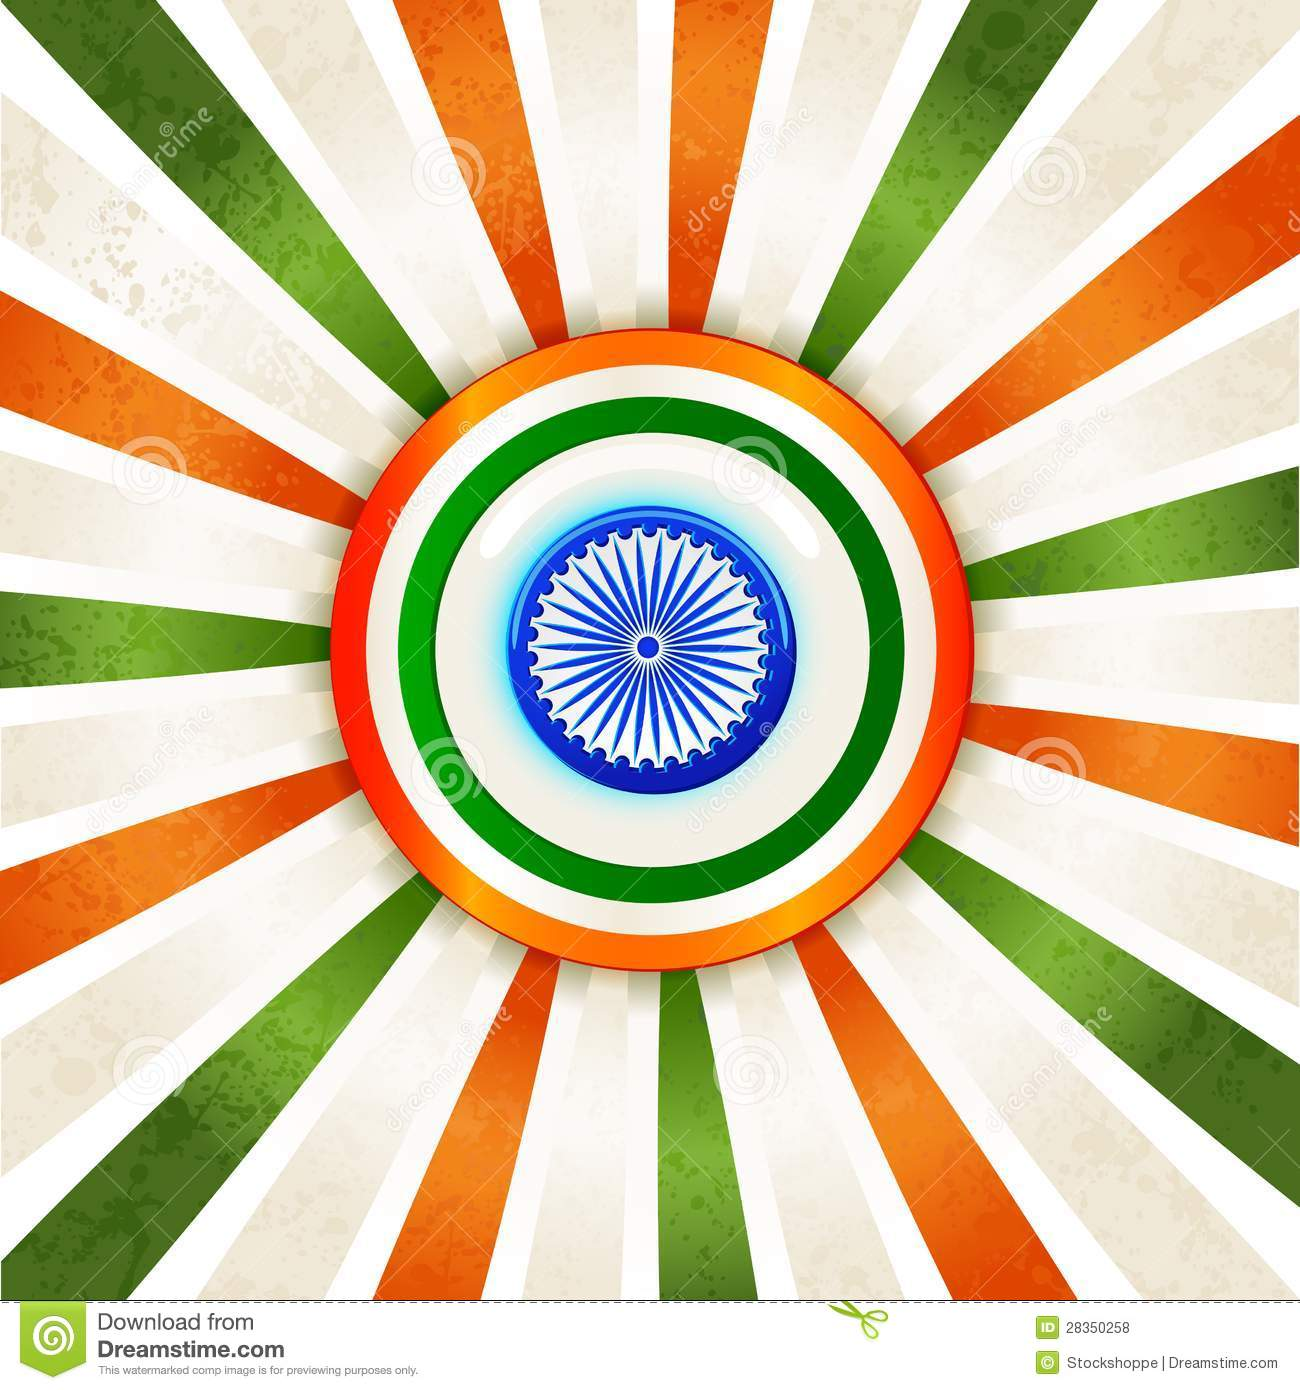 tri colour flag images hd photos 15 2016 tri colour flag